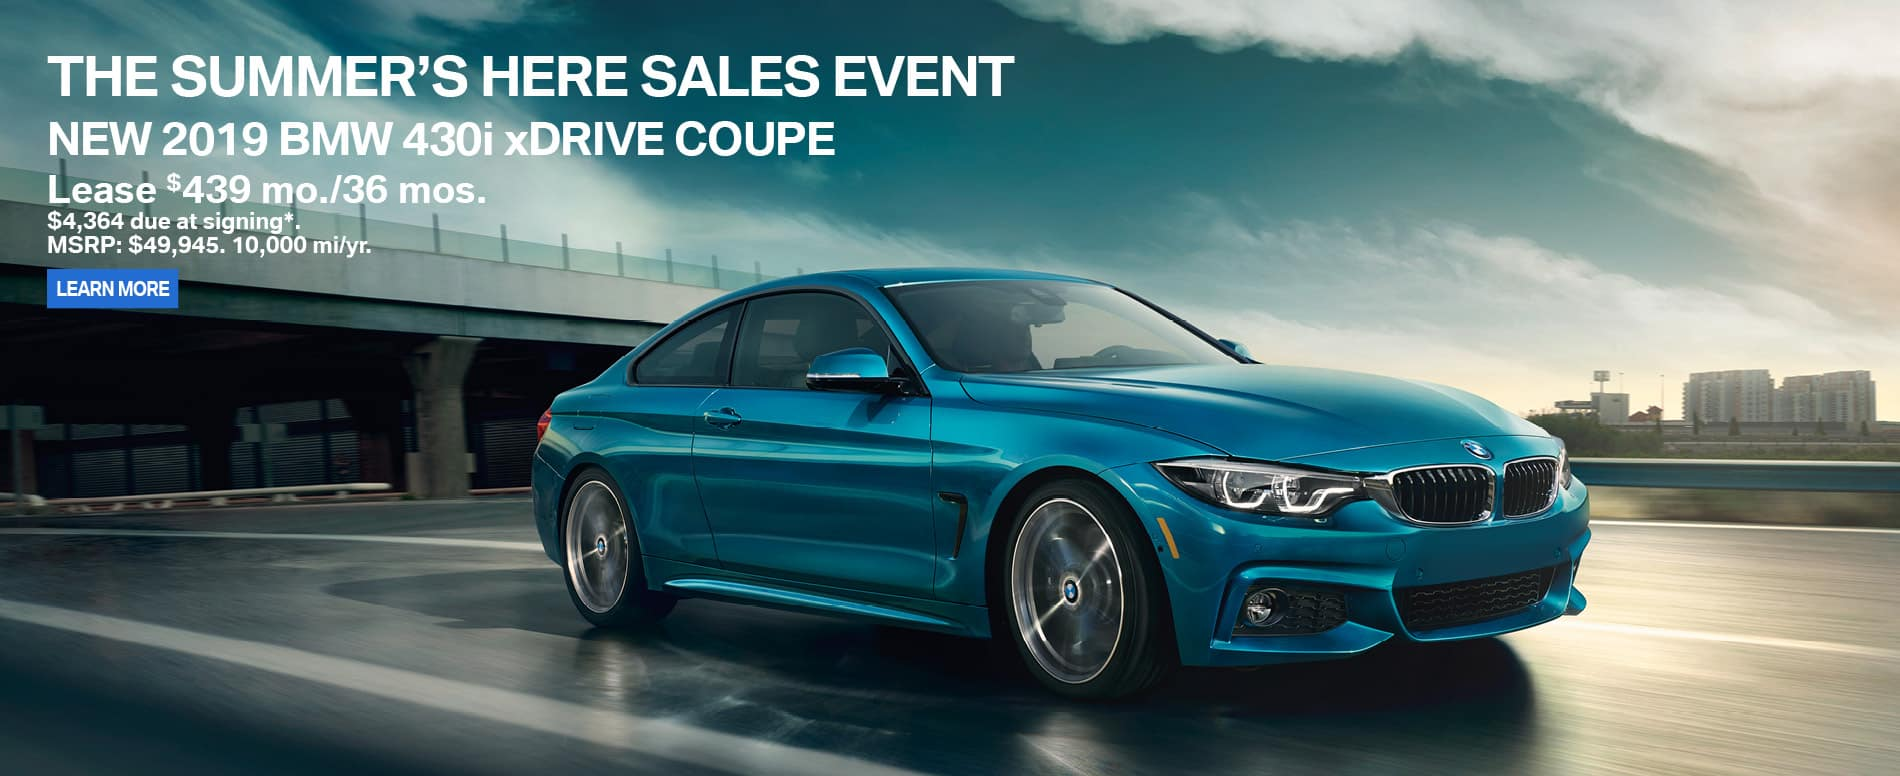 Bmw Dealership Near Me >> Rallye Bmw New Pre Owned Bmw Dealer In Long Island Ny